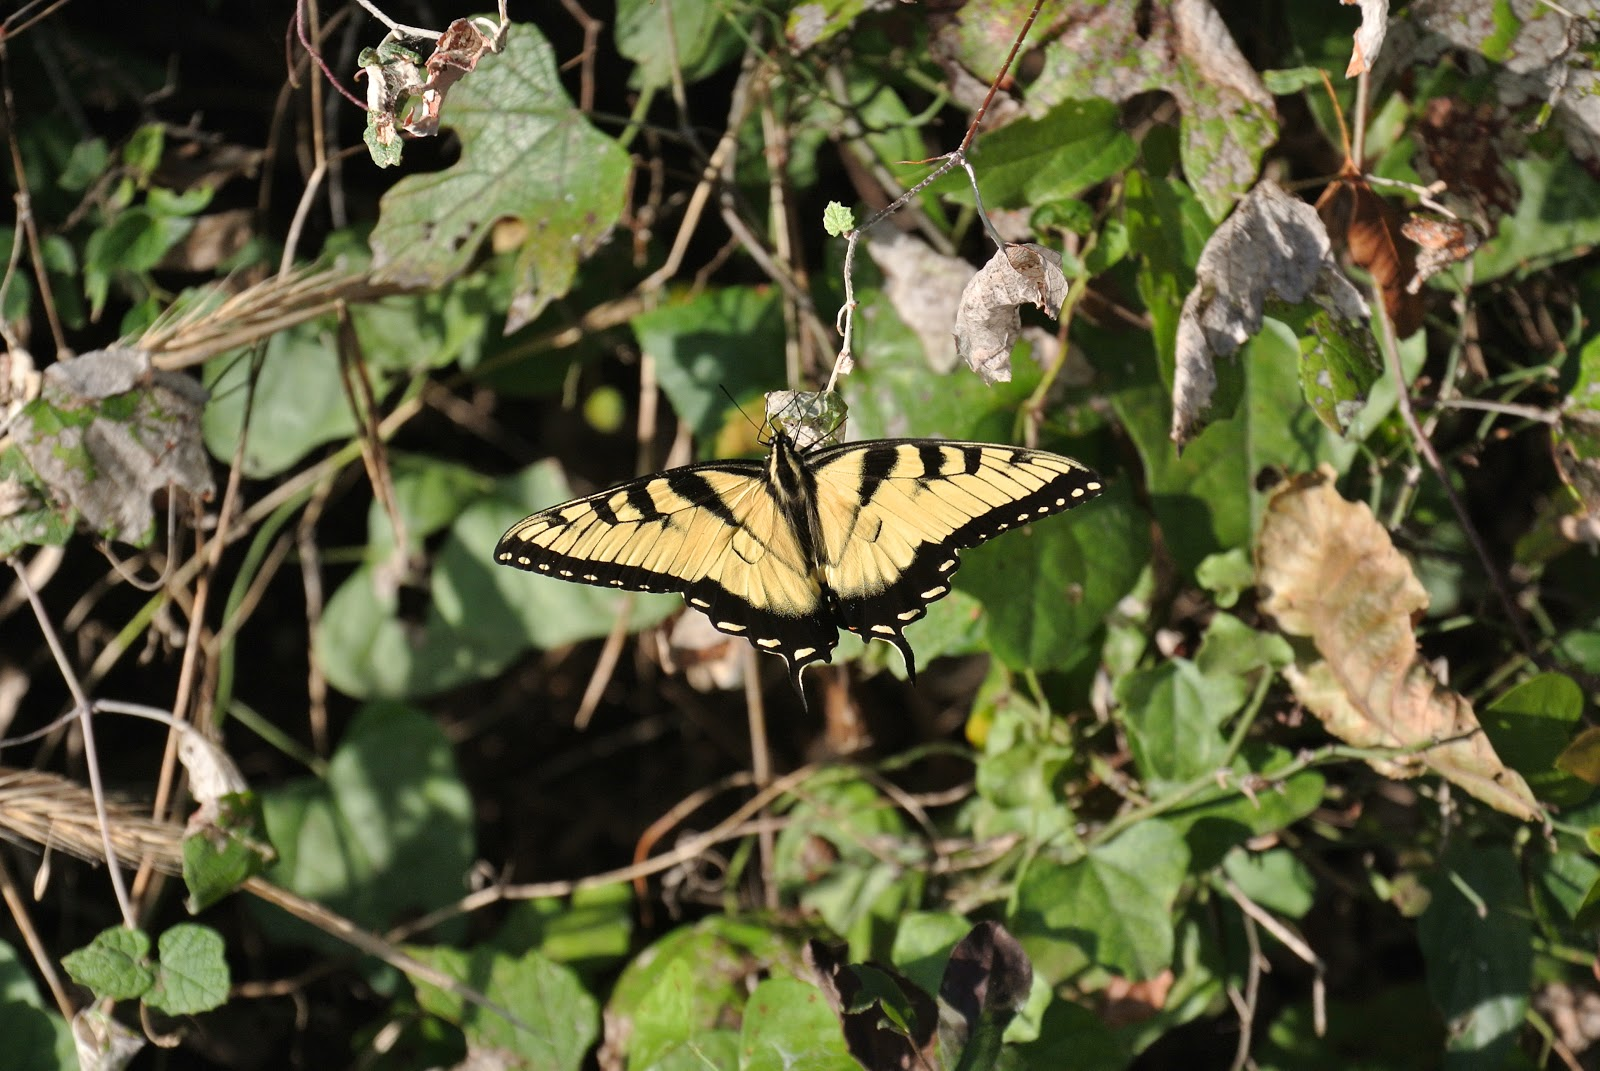 How to Find and Catch Swallowtail Butterflies forecast